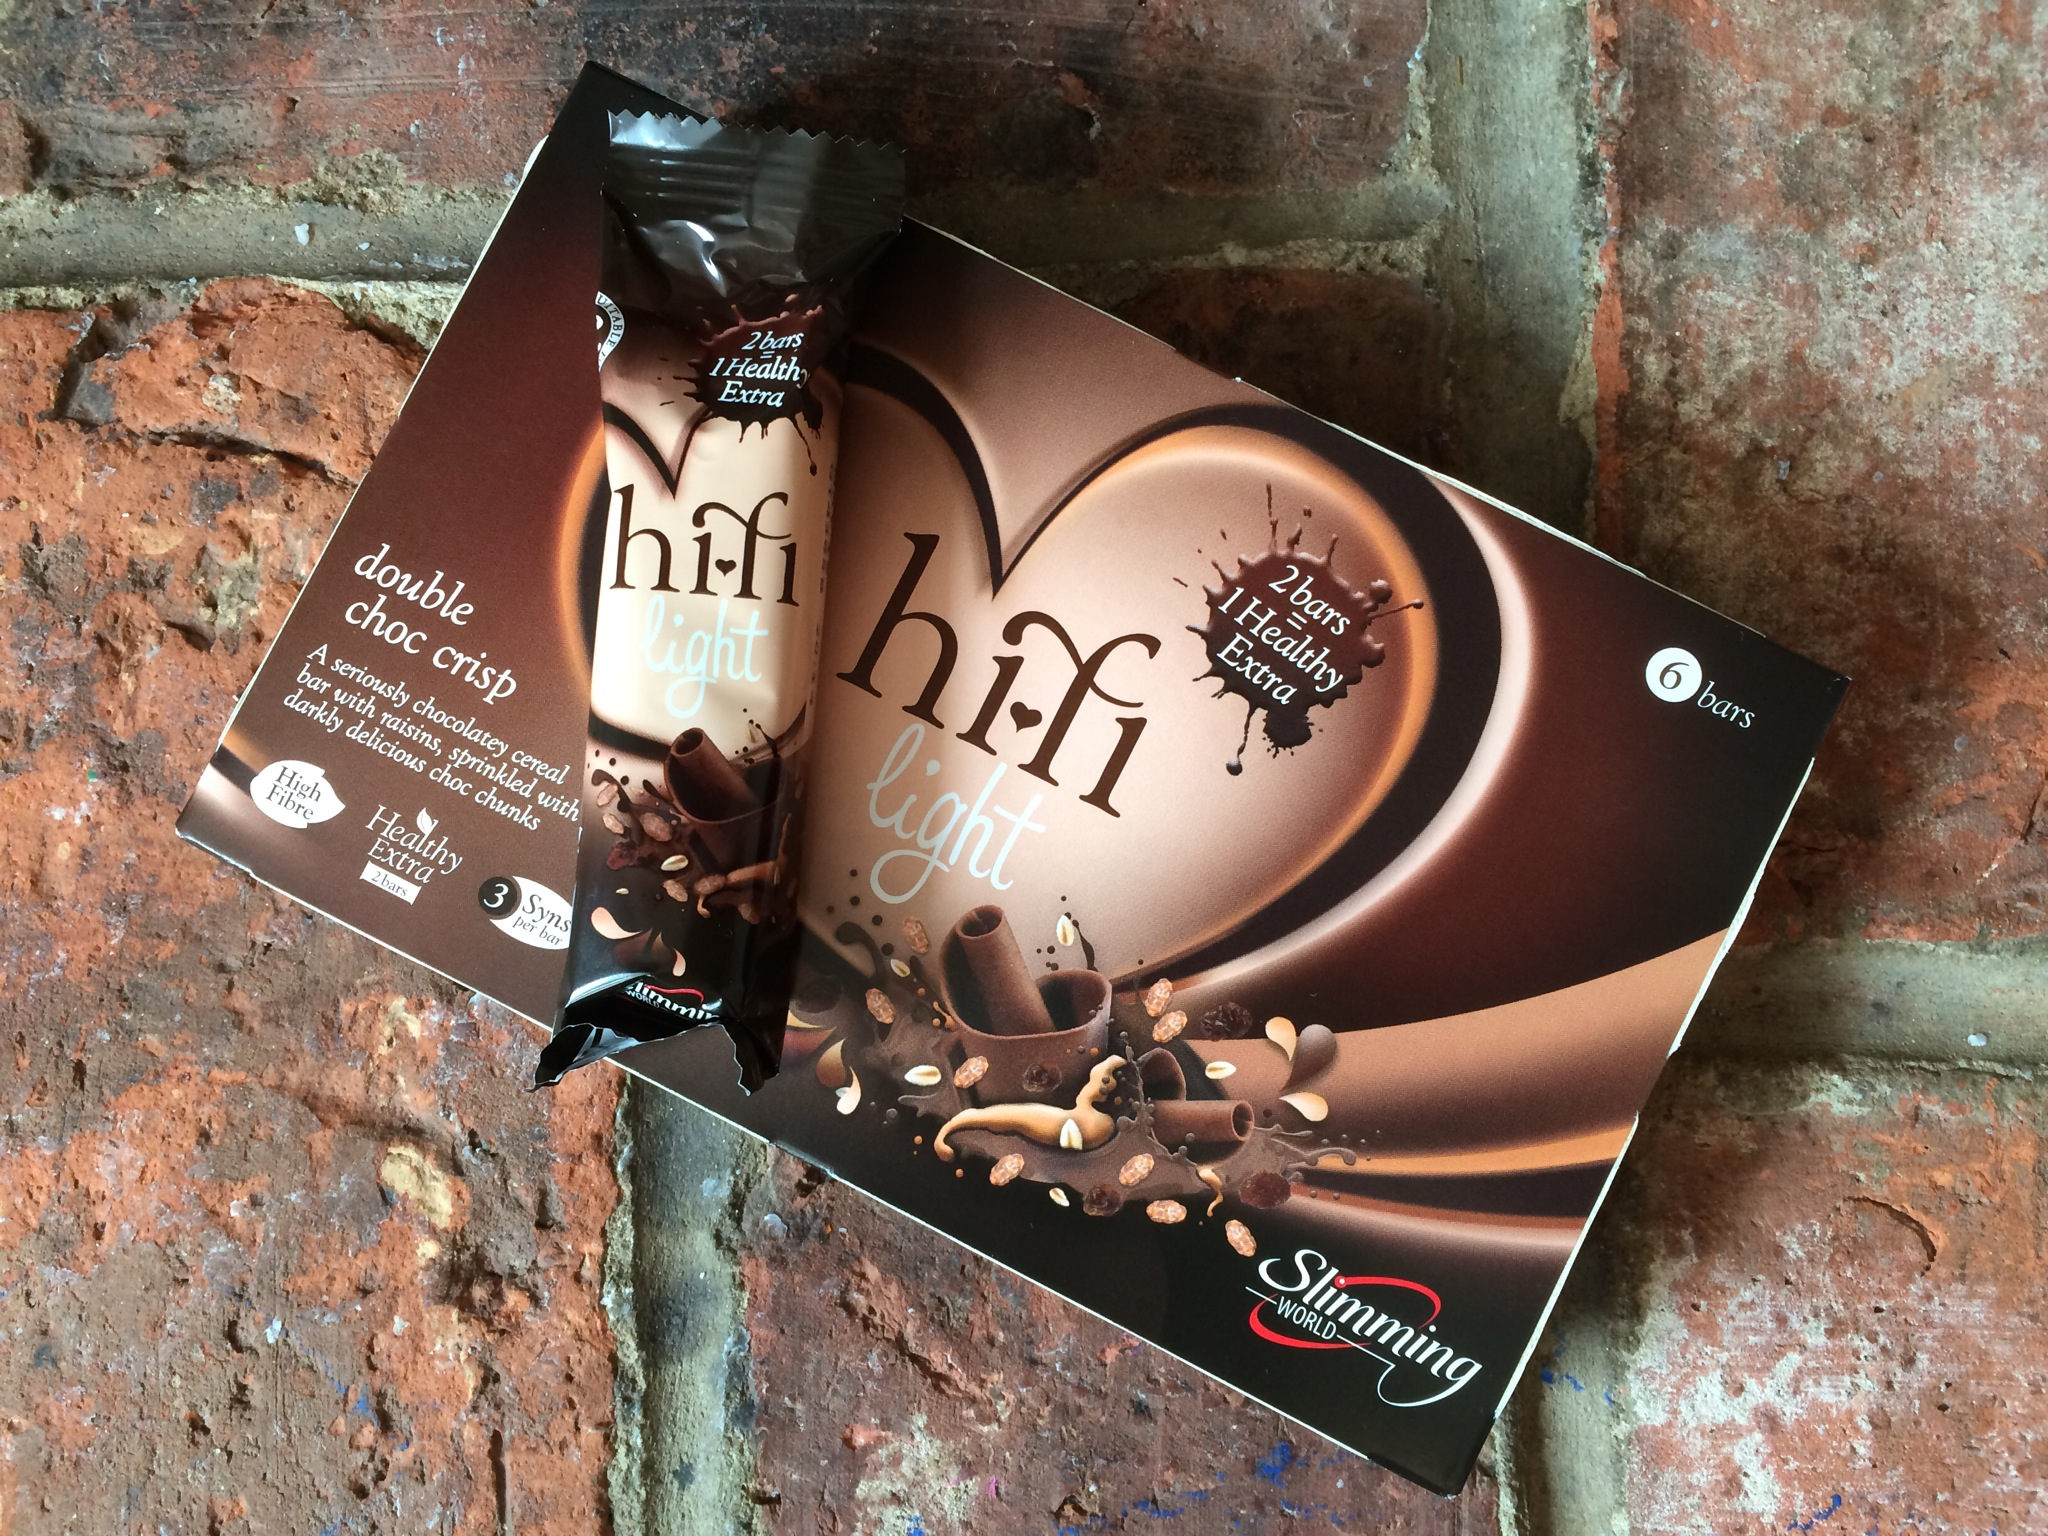 Double Choc Crisp Hi-Fi Light - 3 syns each or 2 bars for a HEB